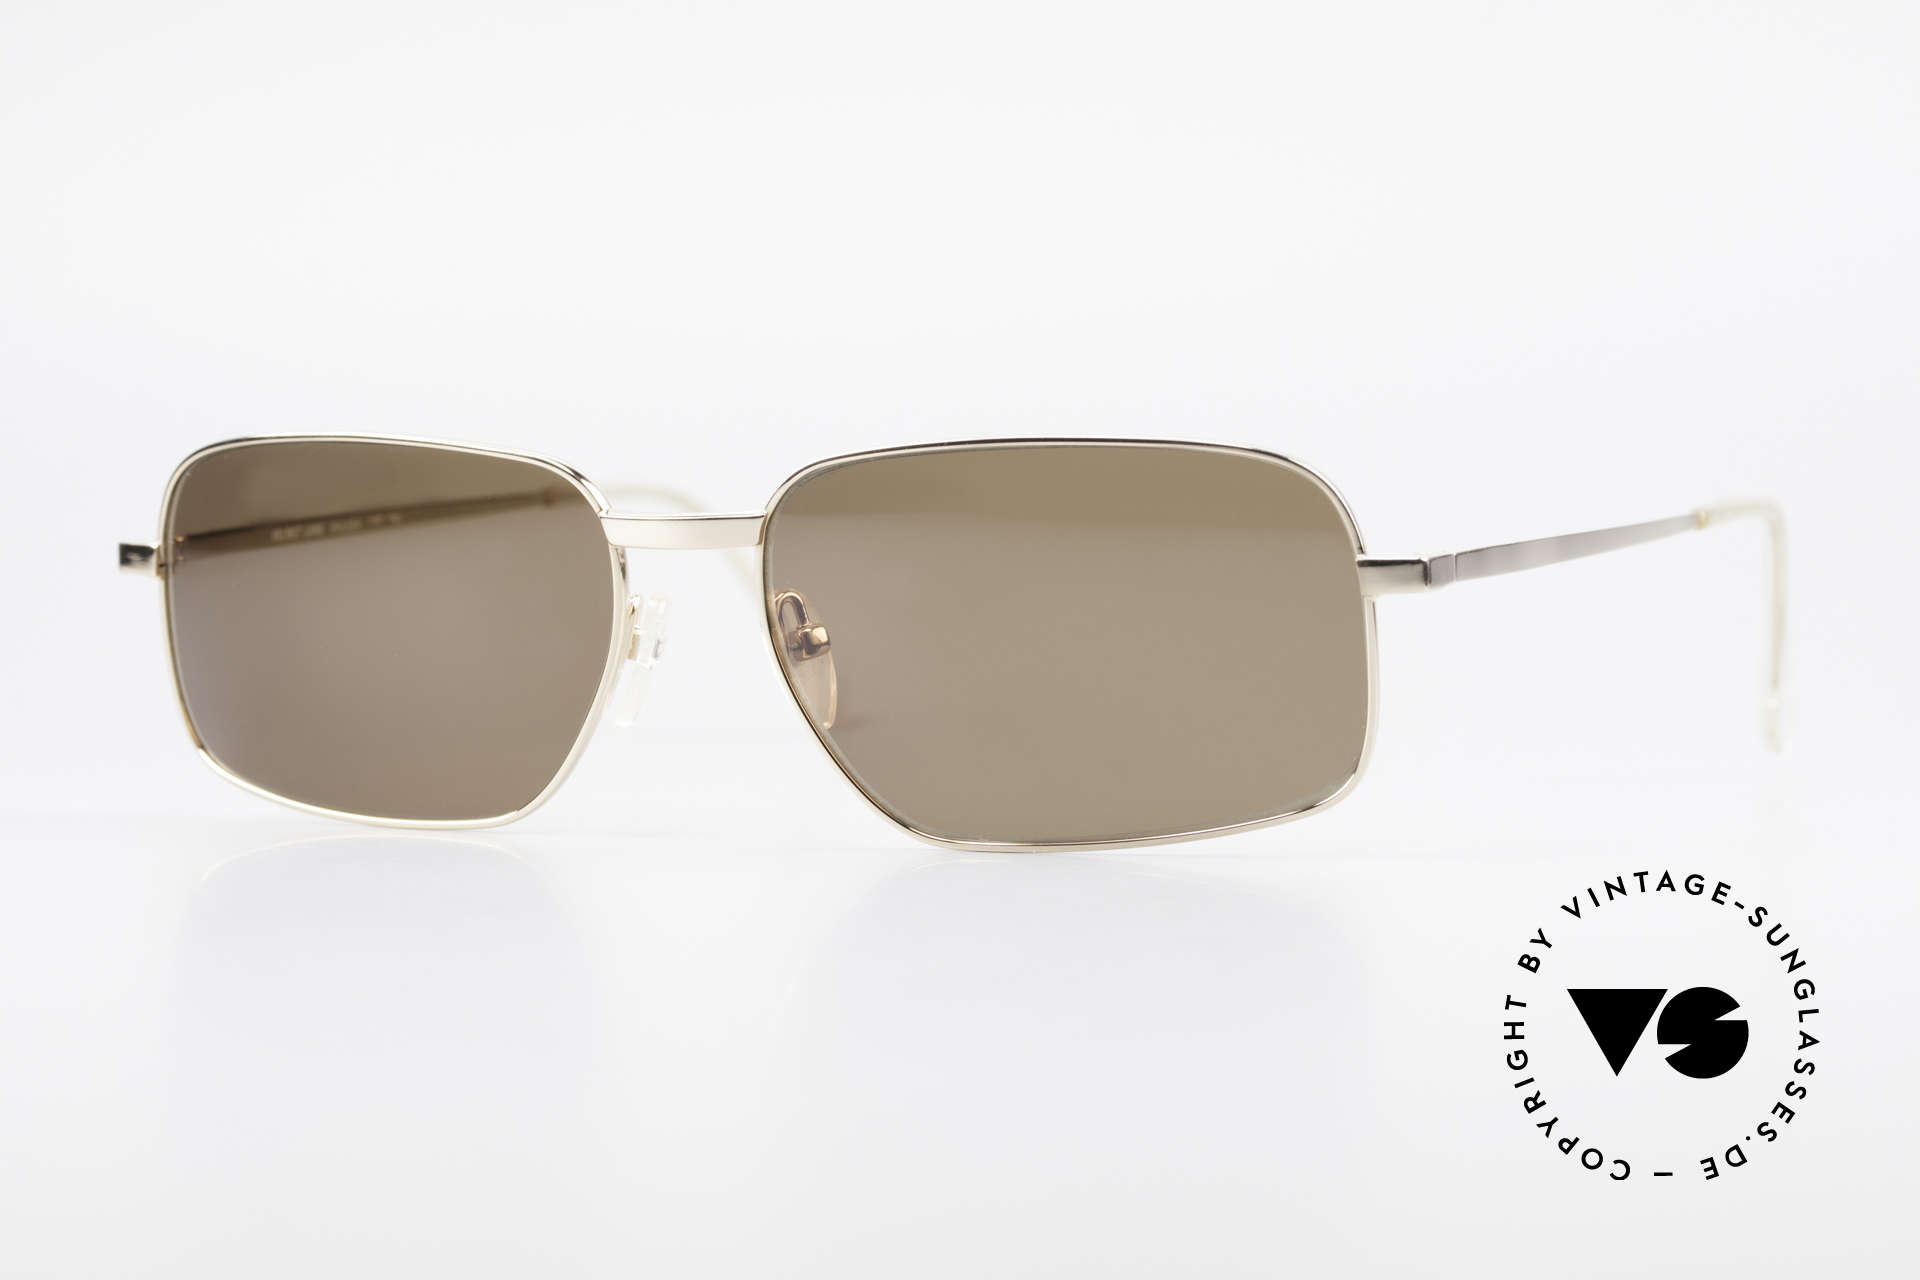 Helmut Lang SHL62A Stylish Titanium Sunglasses, HELMUT LANG vintage Designer Titanium sunglasses, Made for Men